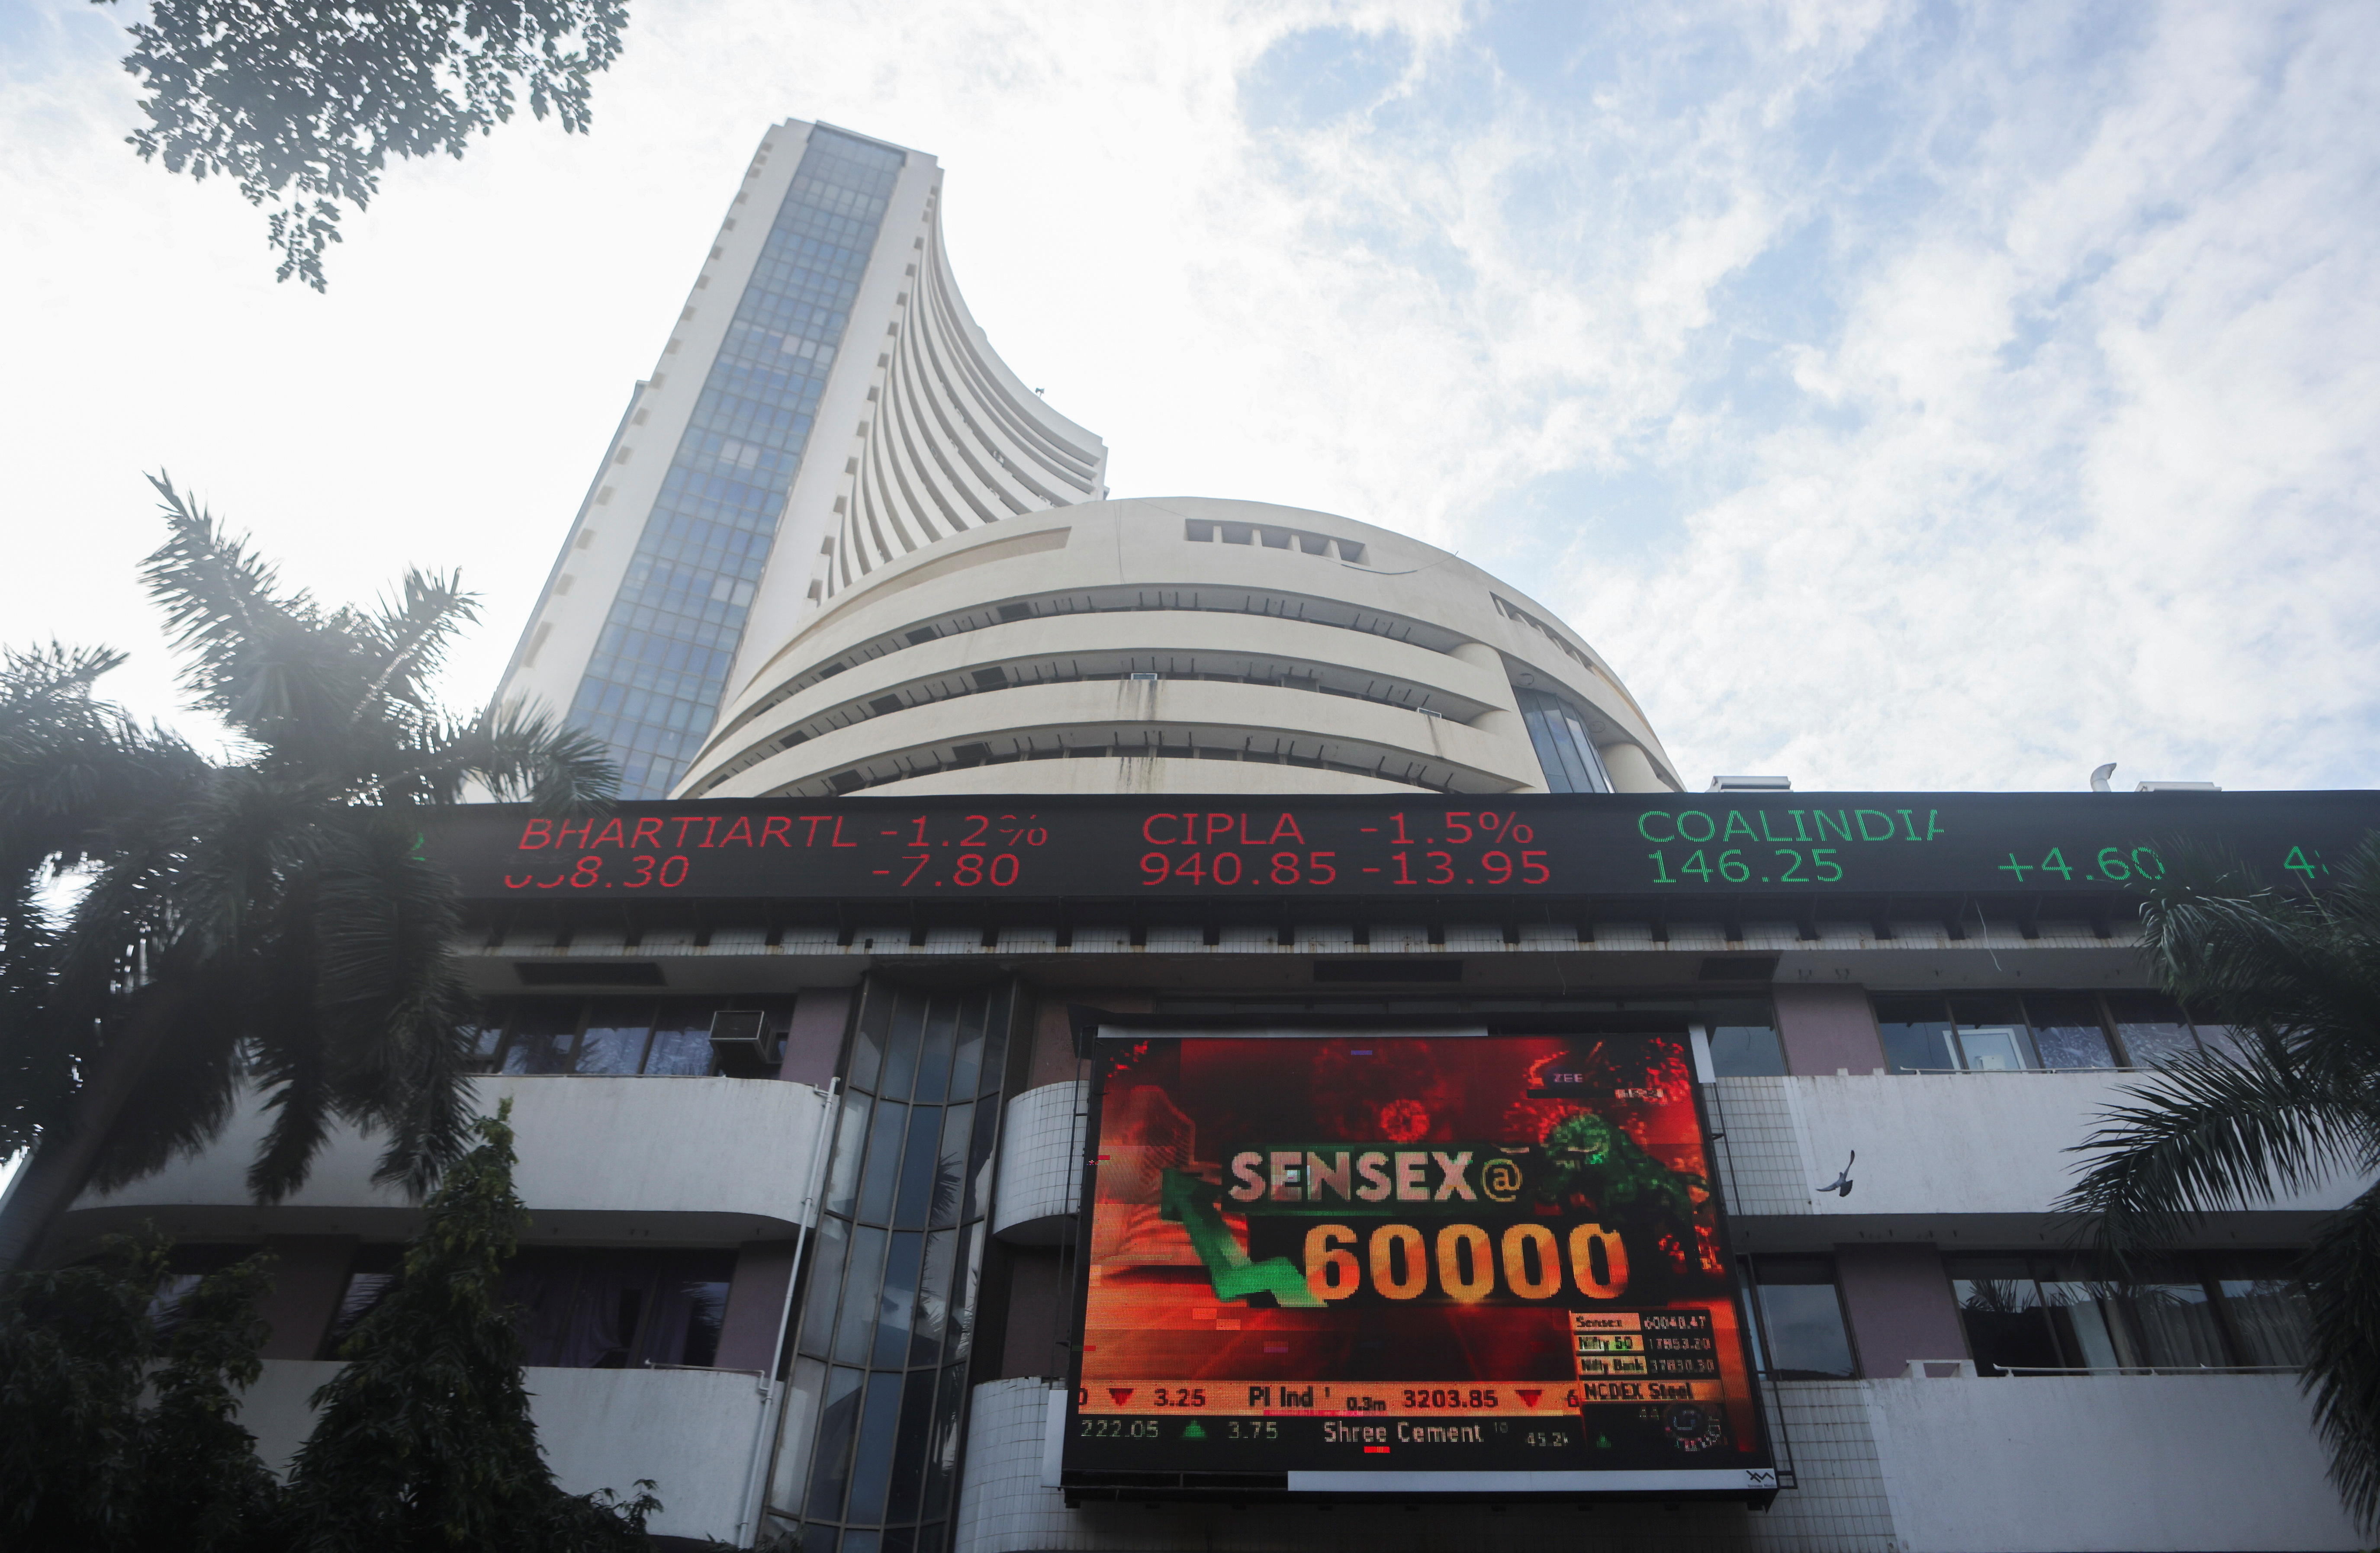 A general view of the Bombay Stock Exchange (BSE), after Sensex surpassed the 60,000 level for the first time, in Mumbai, India, September 24, 2021. REUTERS/Francis Mascarenhas